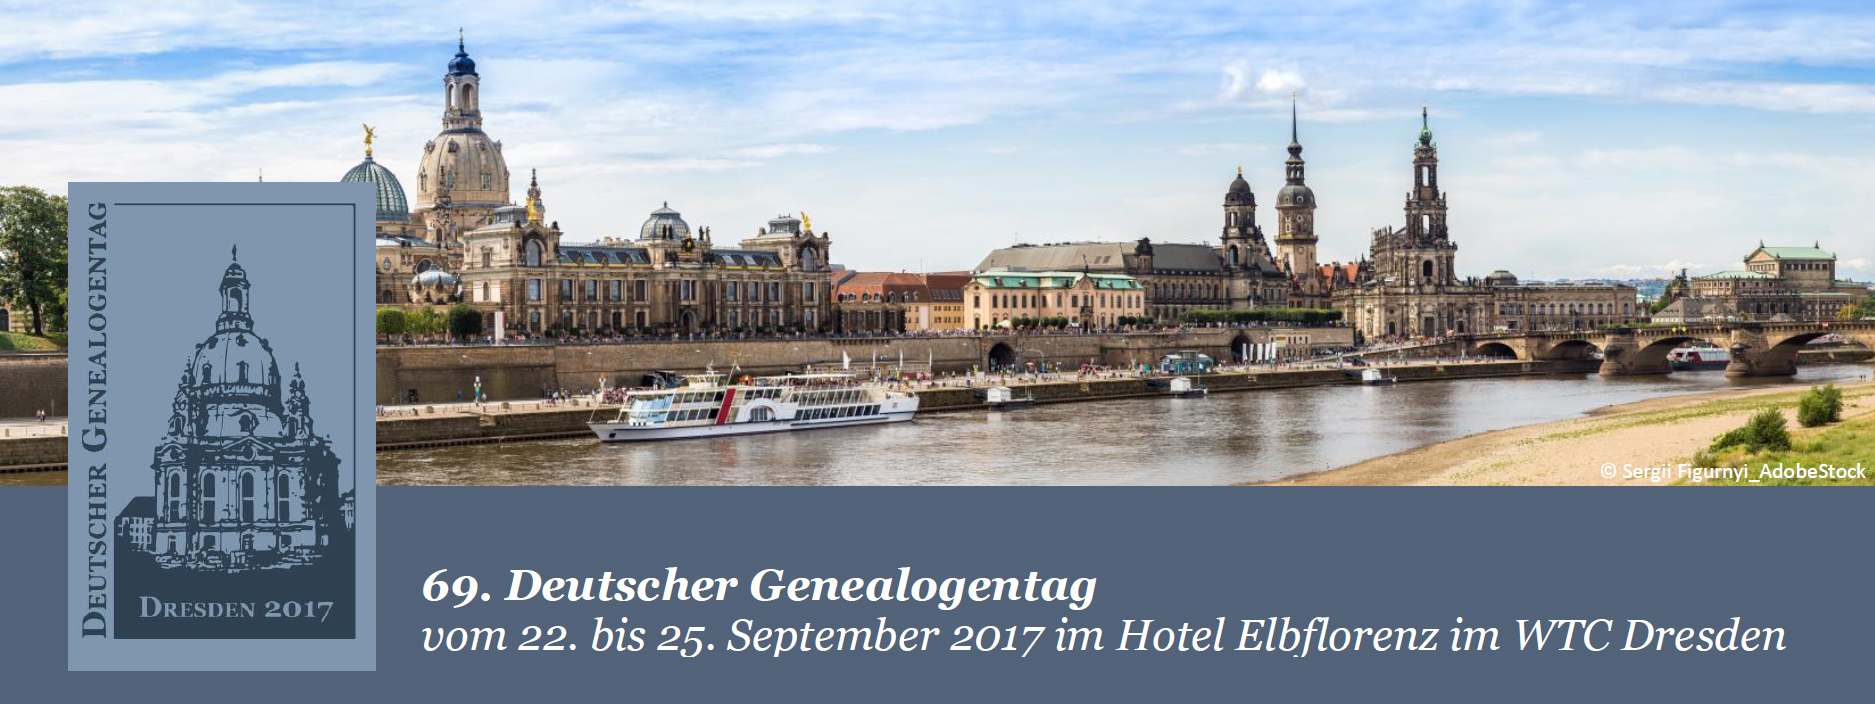 69. Deutscher Genealogentag in Dresden